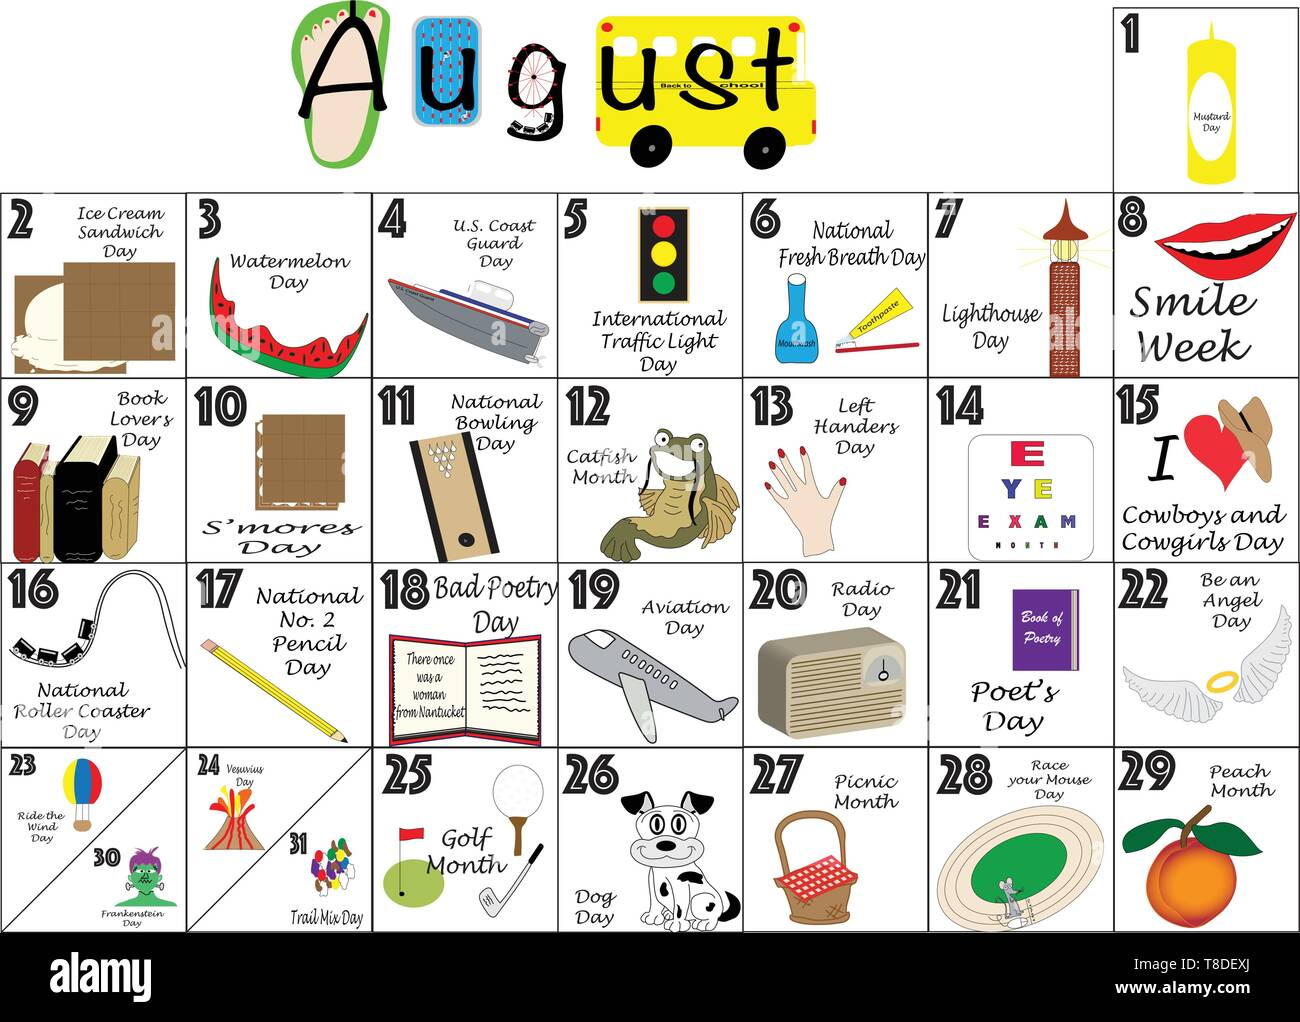 Daily Holiday Calendar 2020 August 2020 calendar illustrated with daily Quirky Holidays and